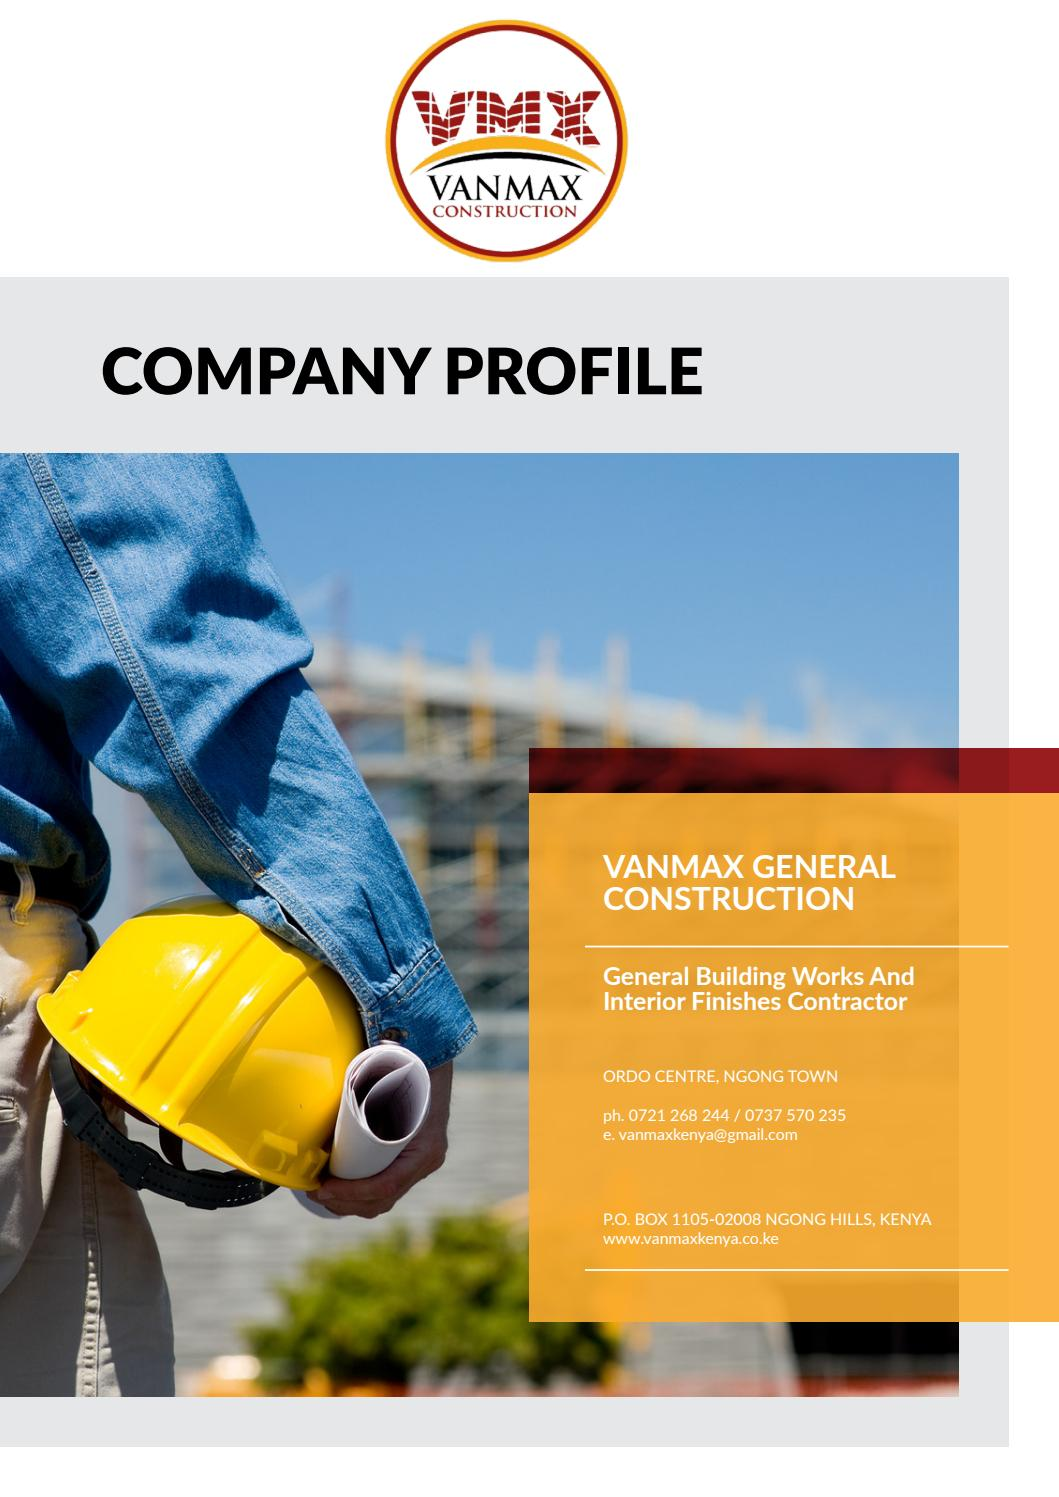 Vanmax Company Profile By Boni Gor Issuu